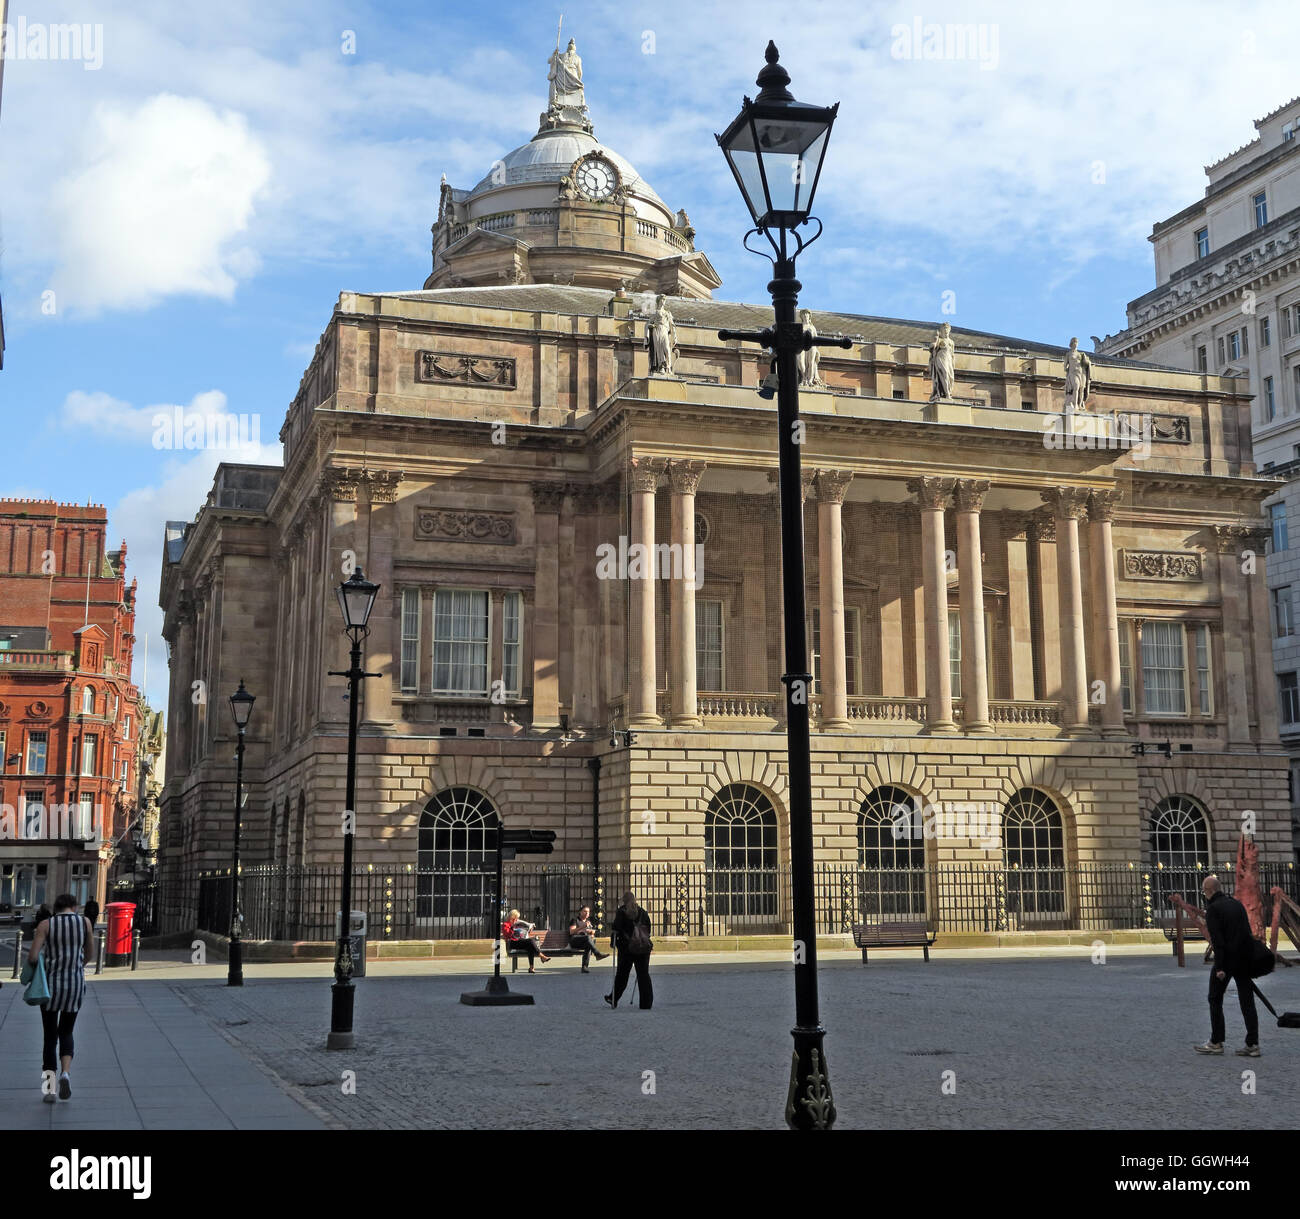 Liverpool Town Hall, Dale St,Merseyside,England,UK - Stock Image